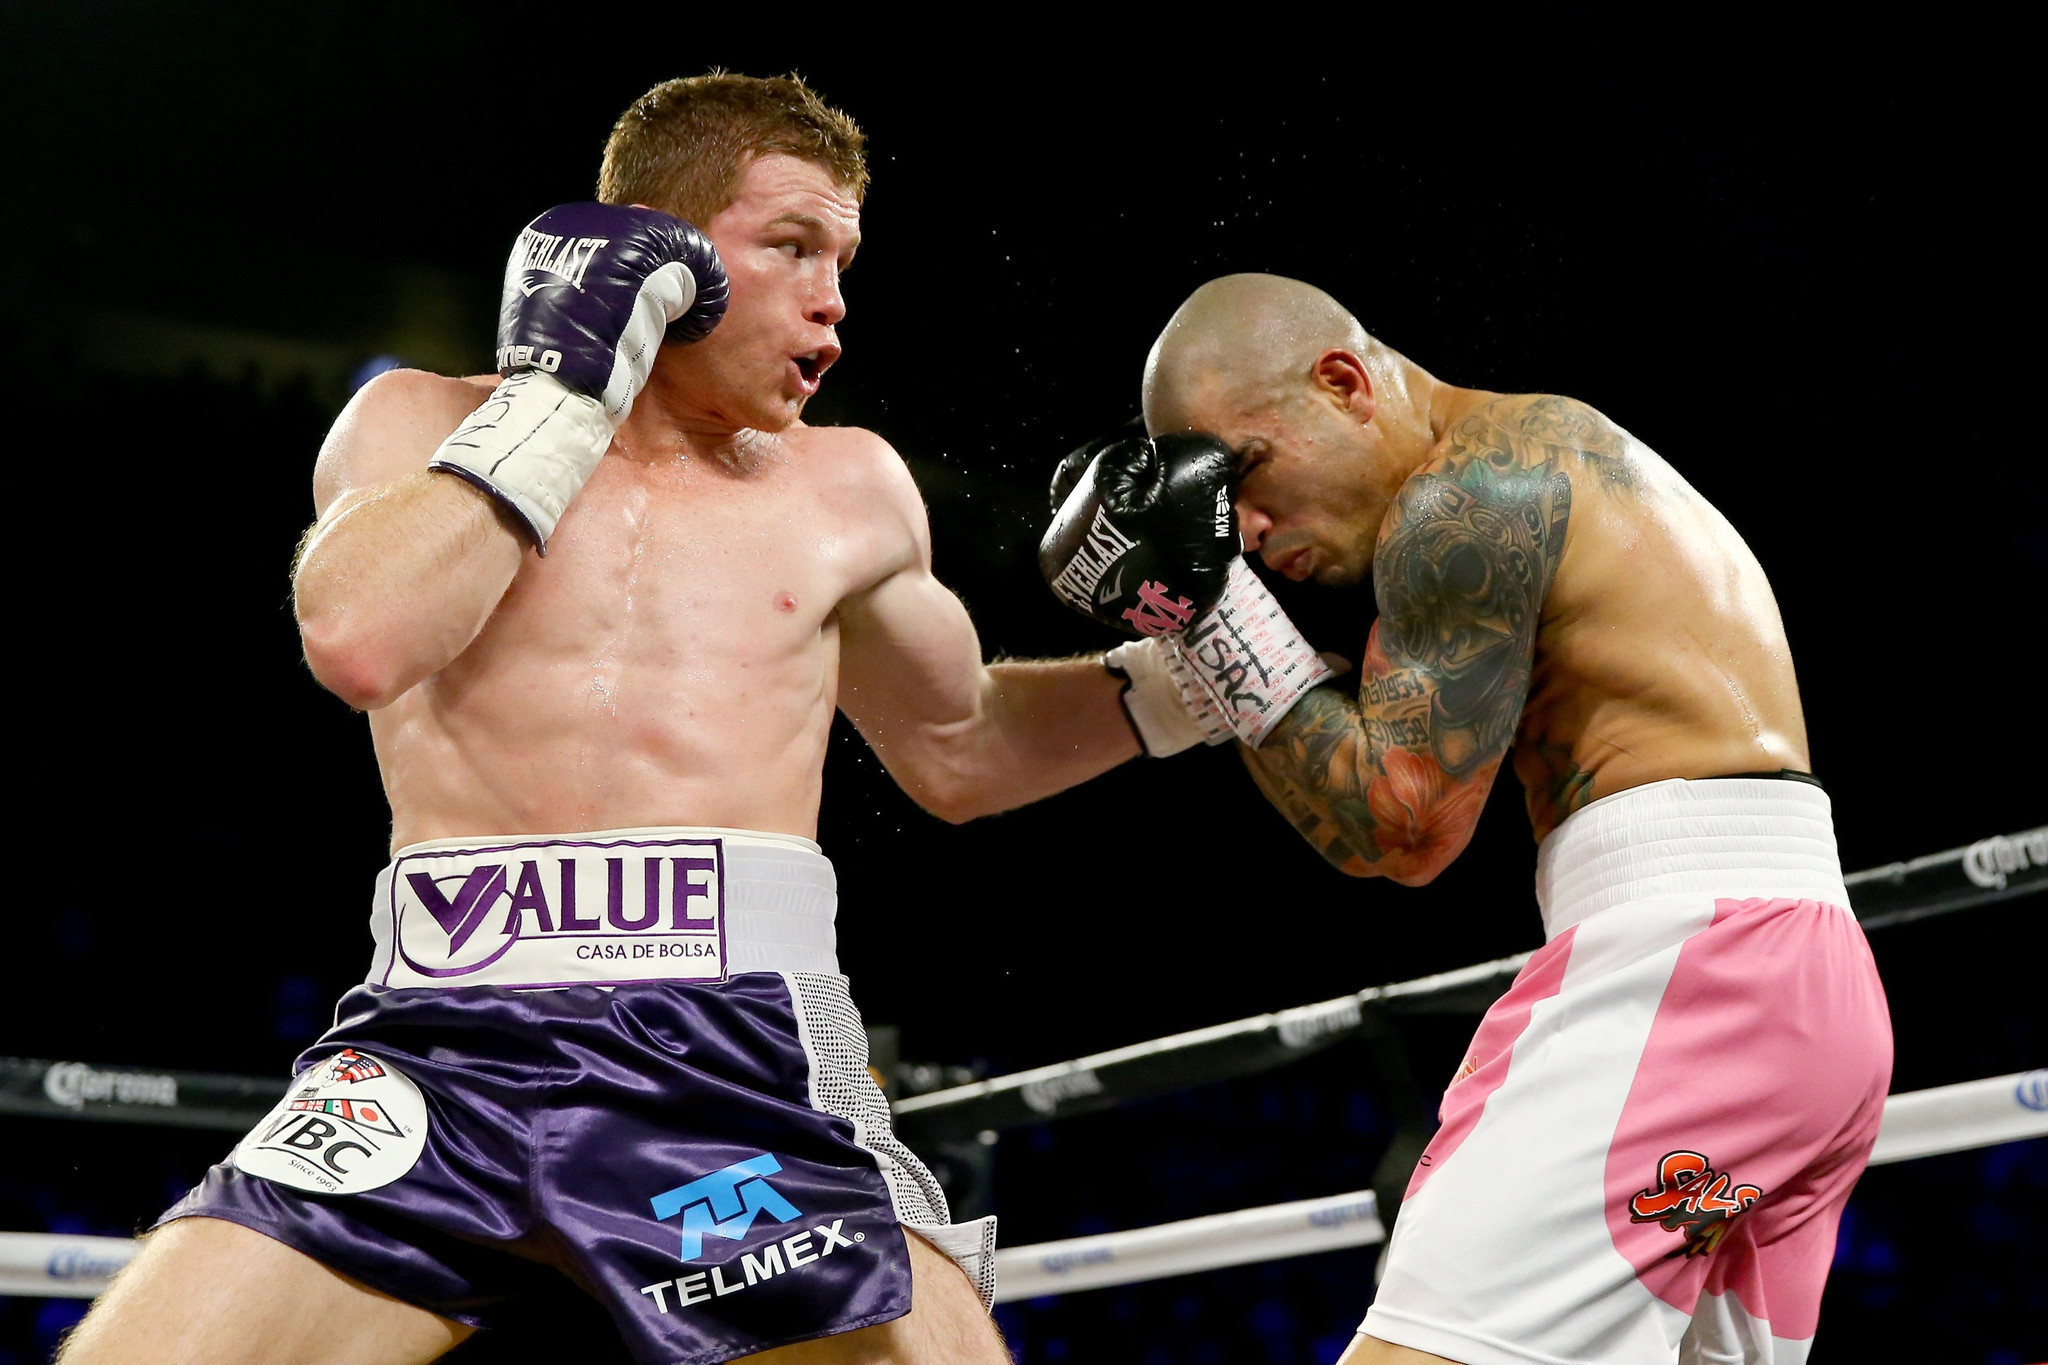 Miguel Cotto faced Canelo Alvarez in November 2015 for the WBC middleweight title. Photo: Al Bello/Getty Images